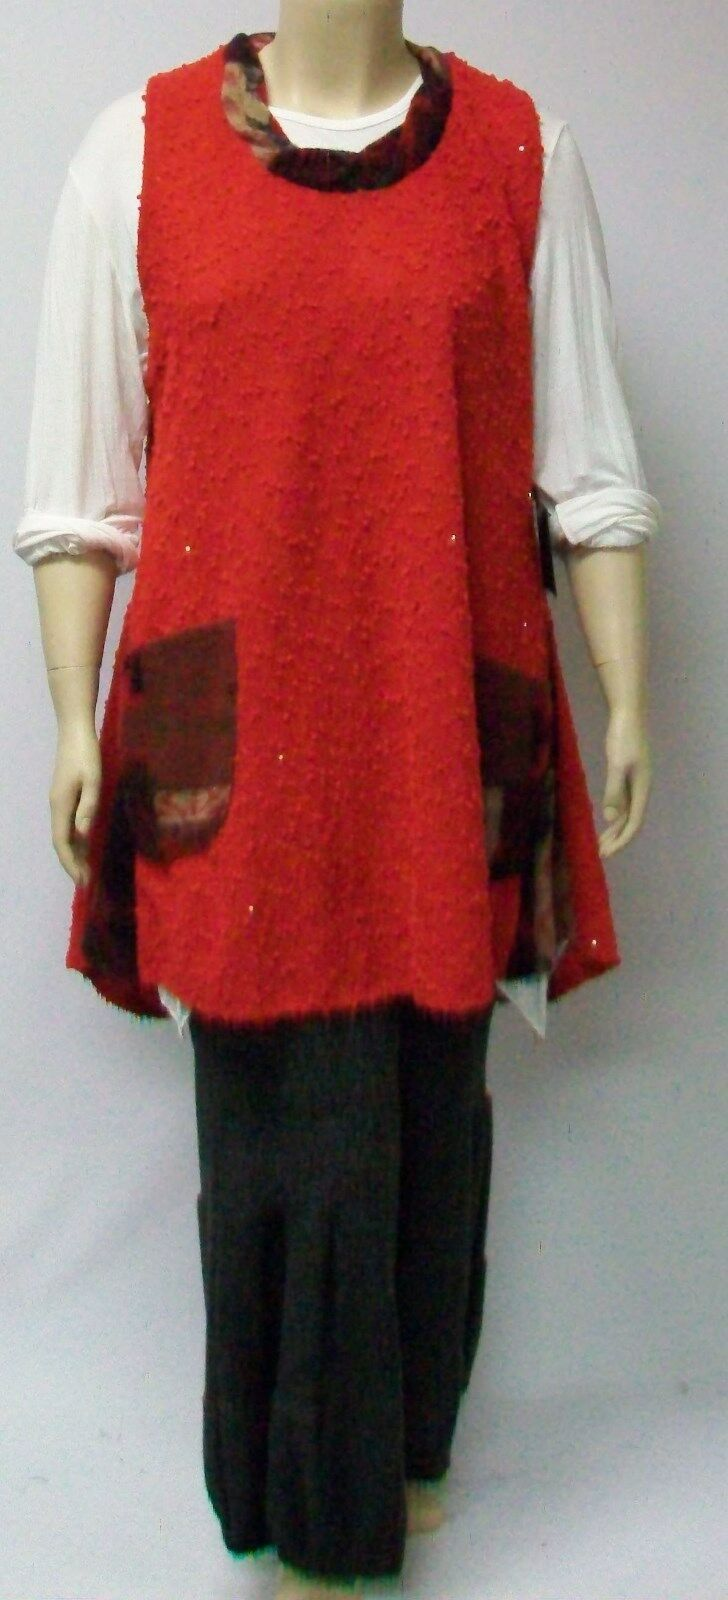 SARAH SANTOS, LARGE,WOOL BLEND TUNIC TRIMMED IN CONTRASTING WOOL TRIM,ITALIAN .